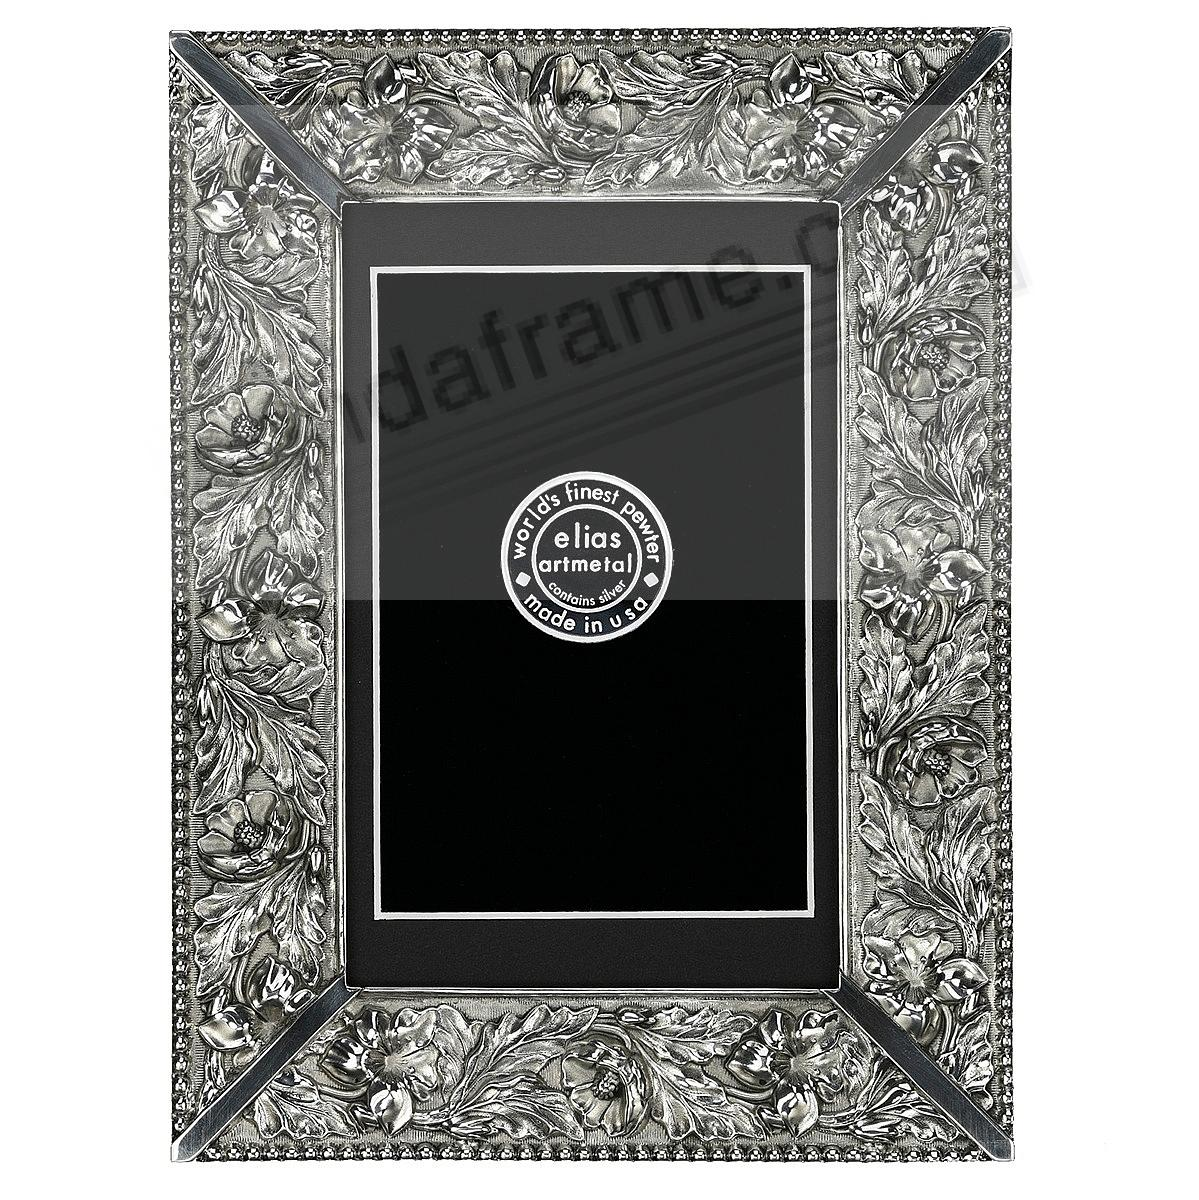 WEDDING FLOWERS Fine Pewter 5x7/4x6 frame<br>by Elias Artmetal&reg;